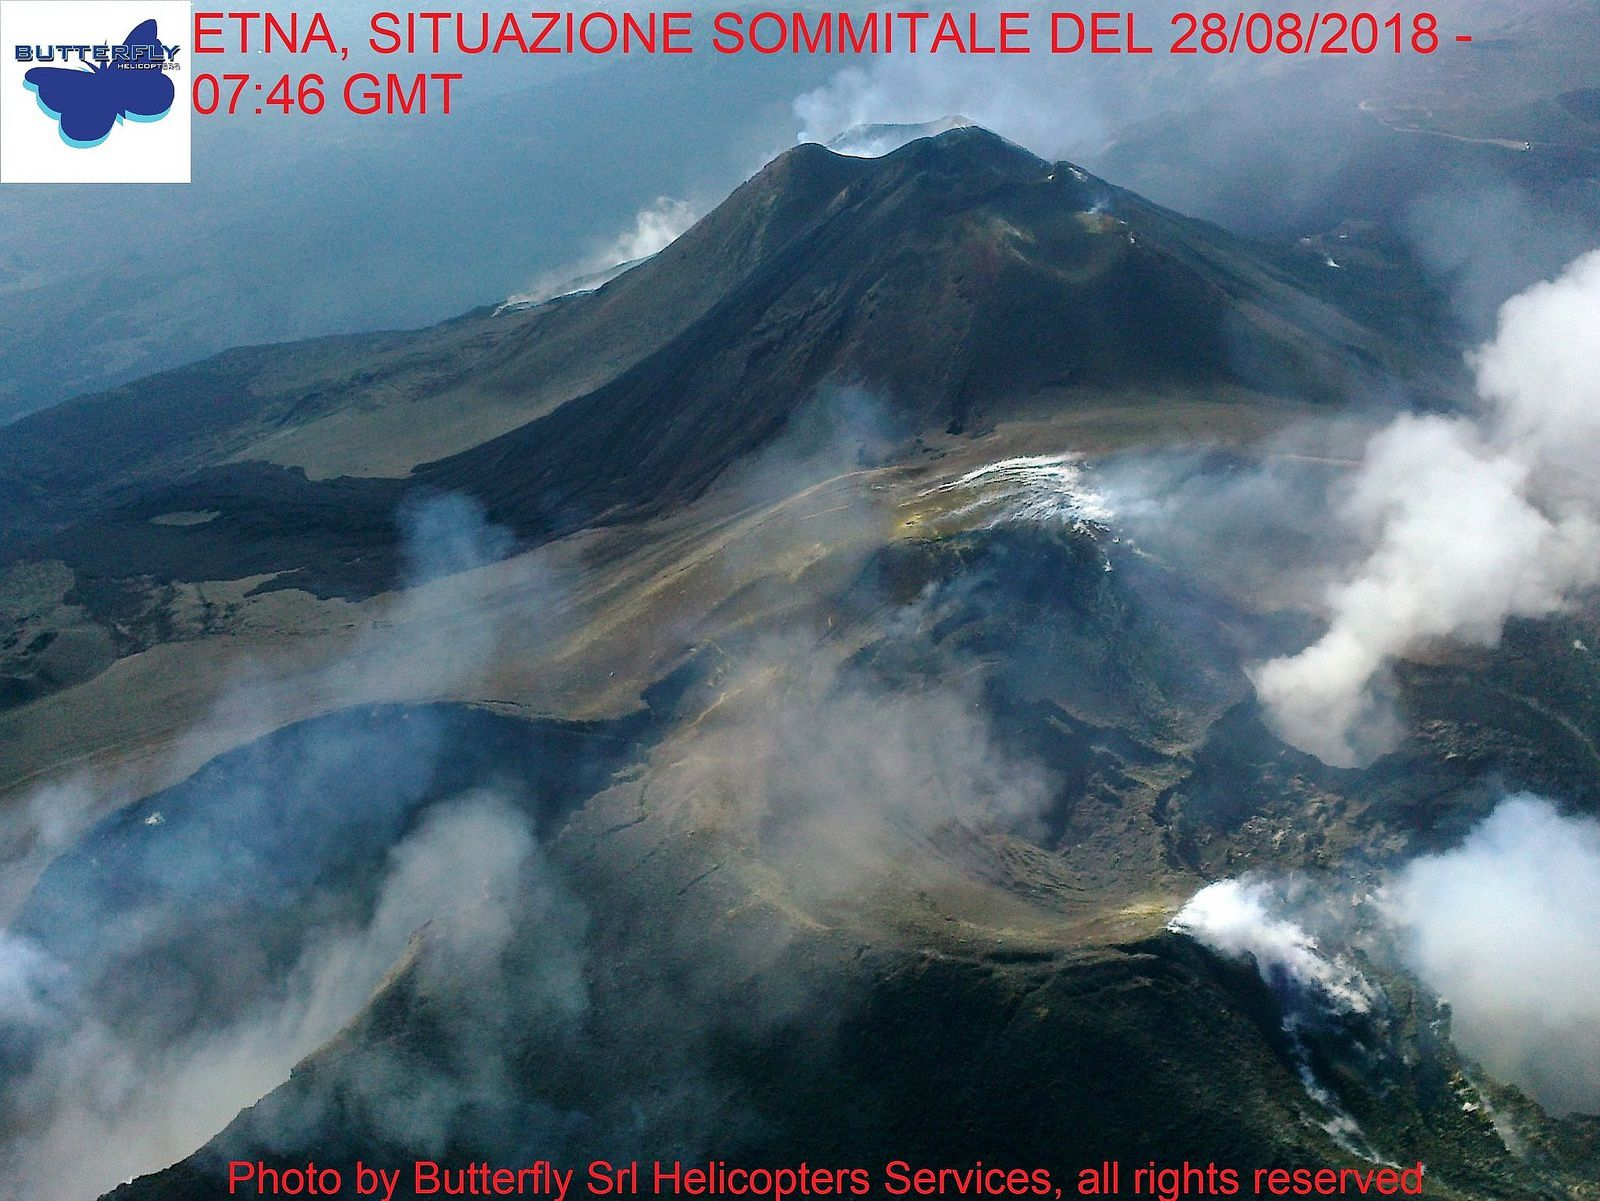 Etna - flying above the summit respectively at 7:46 and 8:43 on 28.08.2018 - photos J.Nasi / Butterfly Helicopters